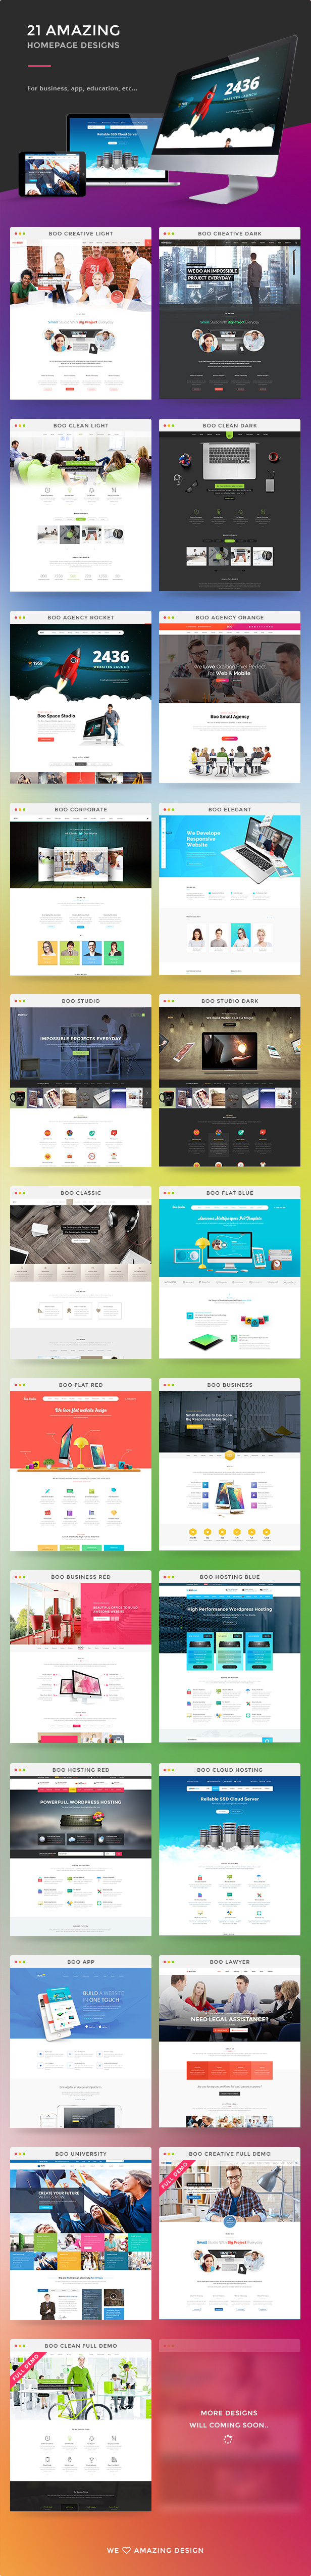 21 incredible homepage designs